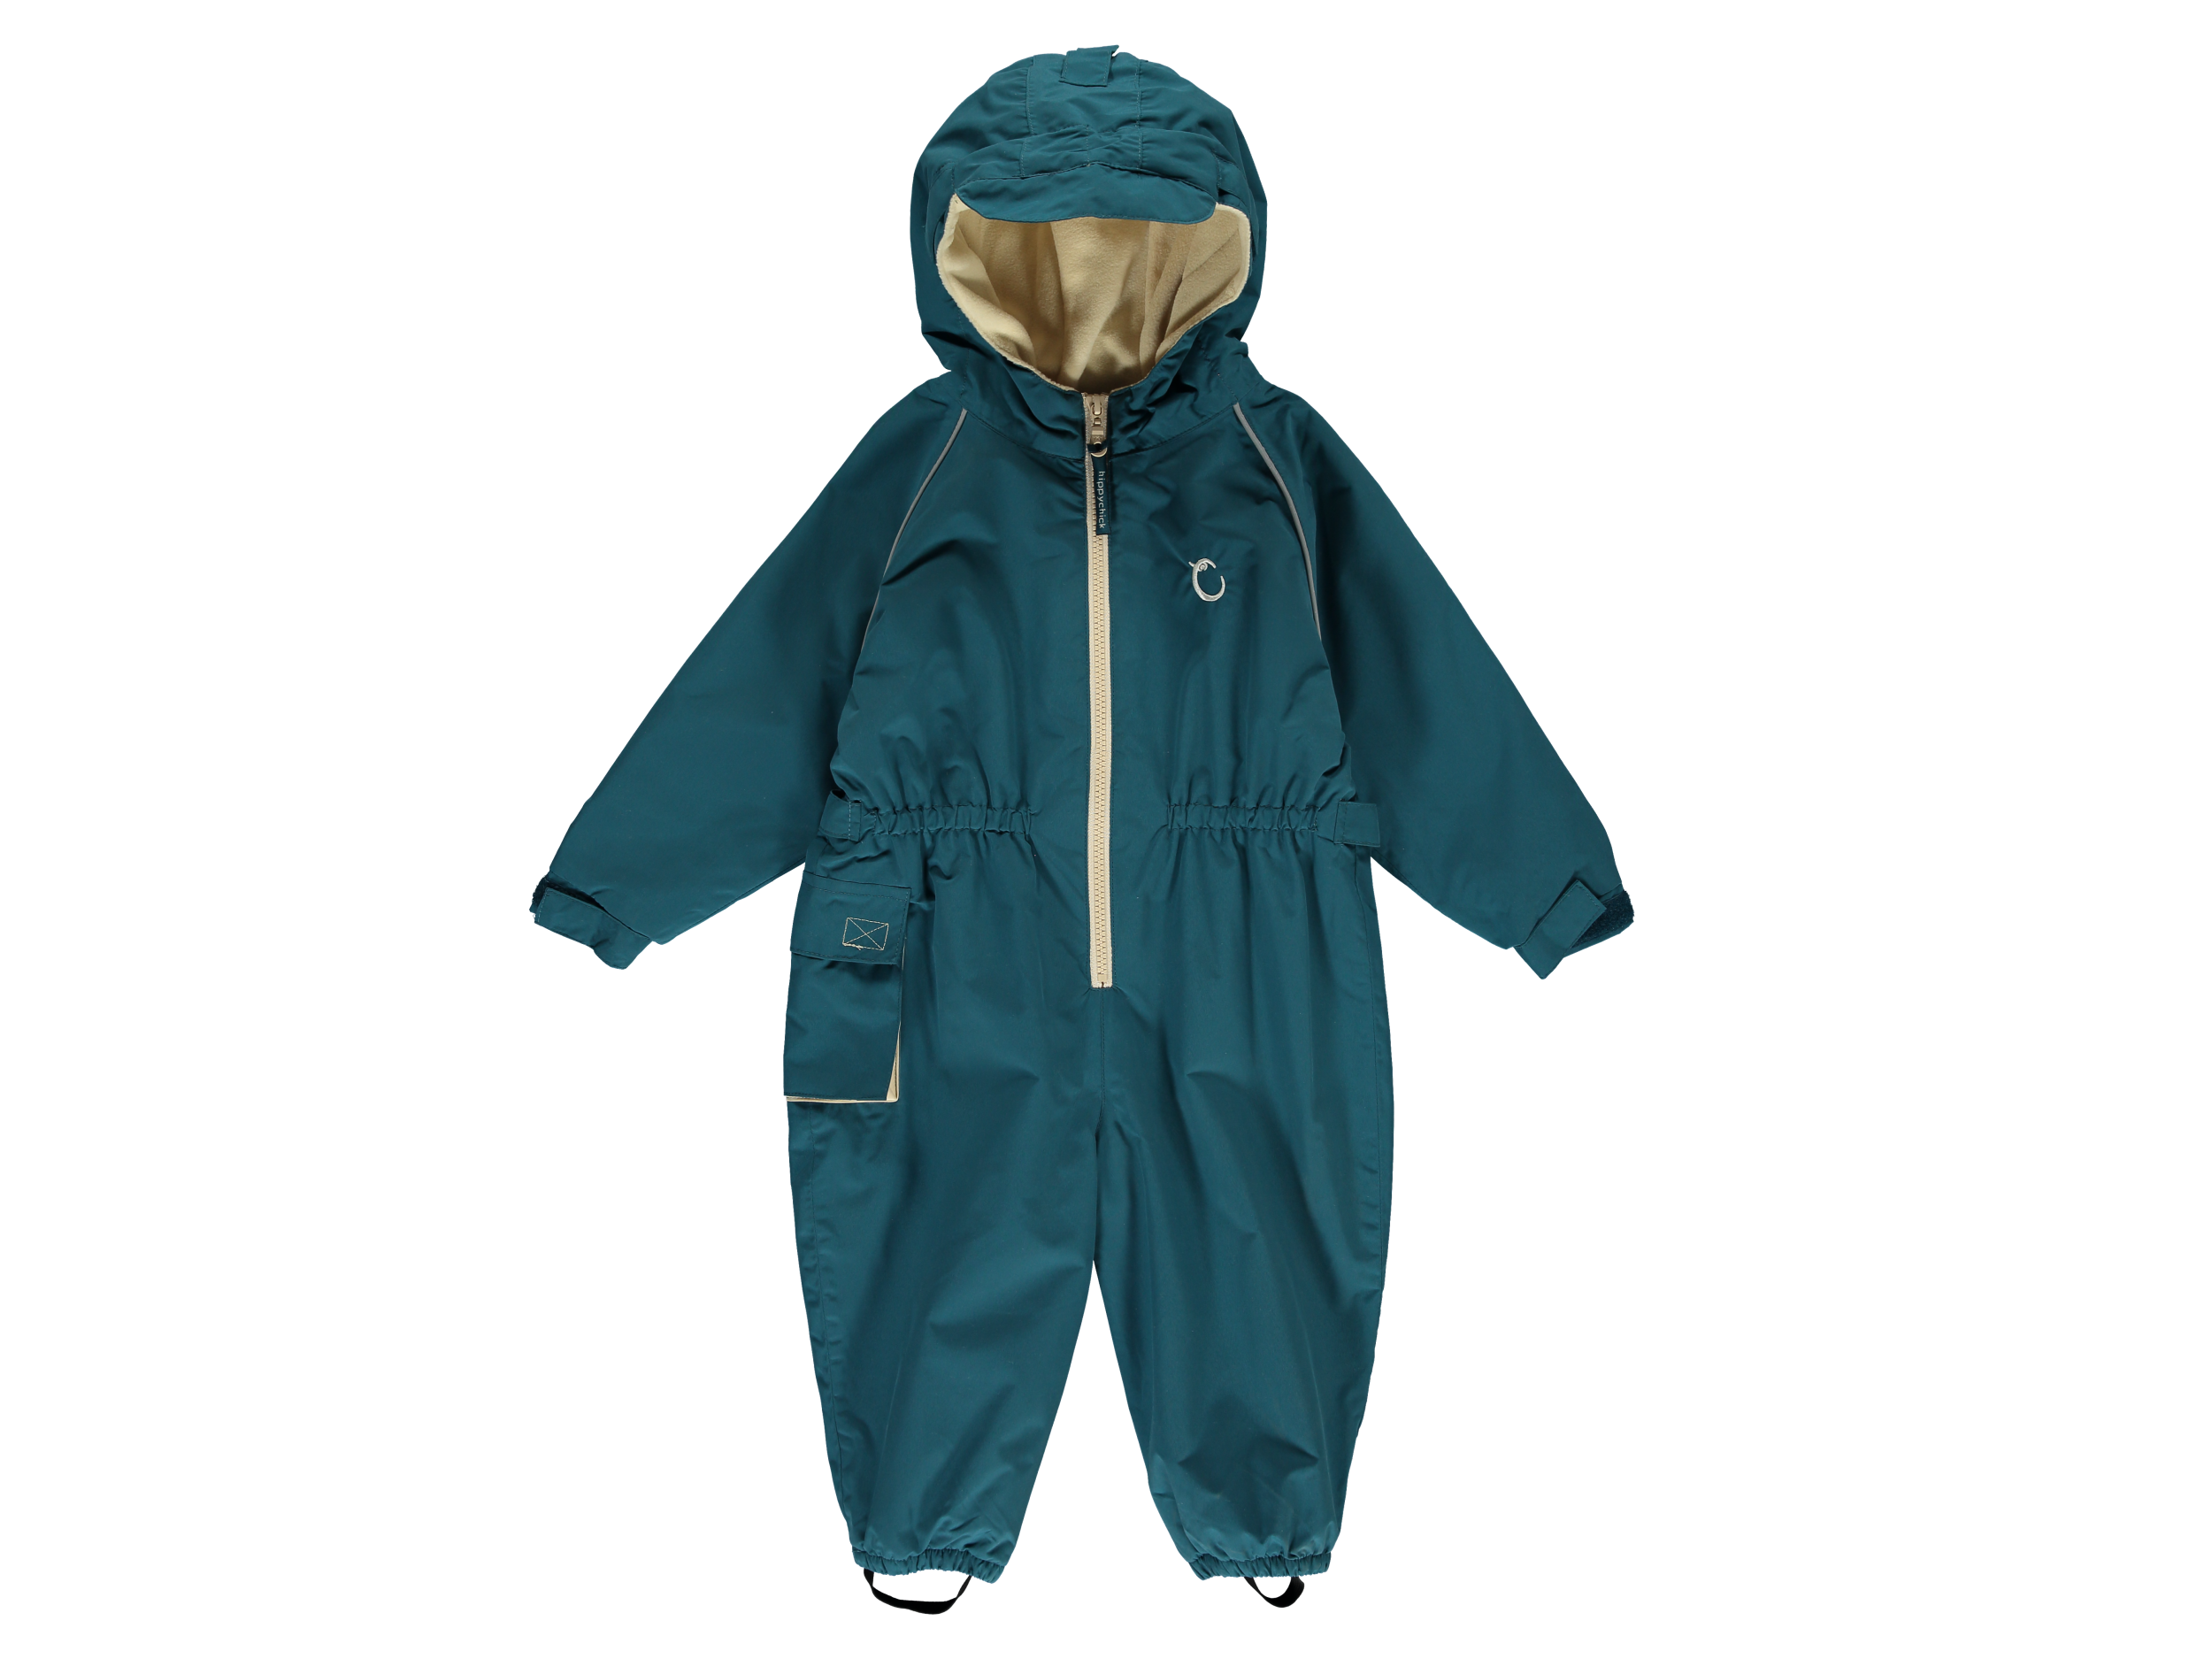 Toddler Soft Baby Girl/'s Boy/'s Down Snow Suit One Piece Size 6 12 18 24 Months